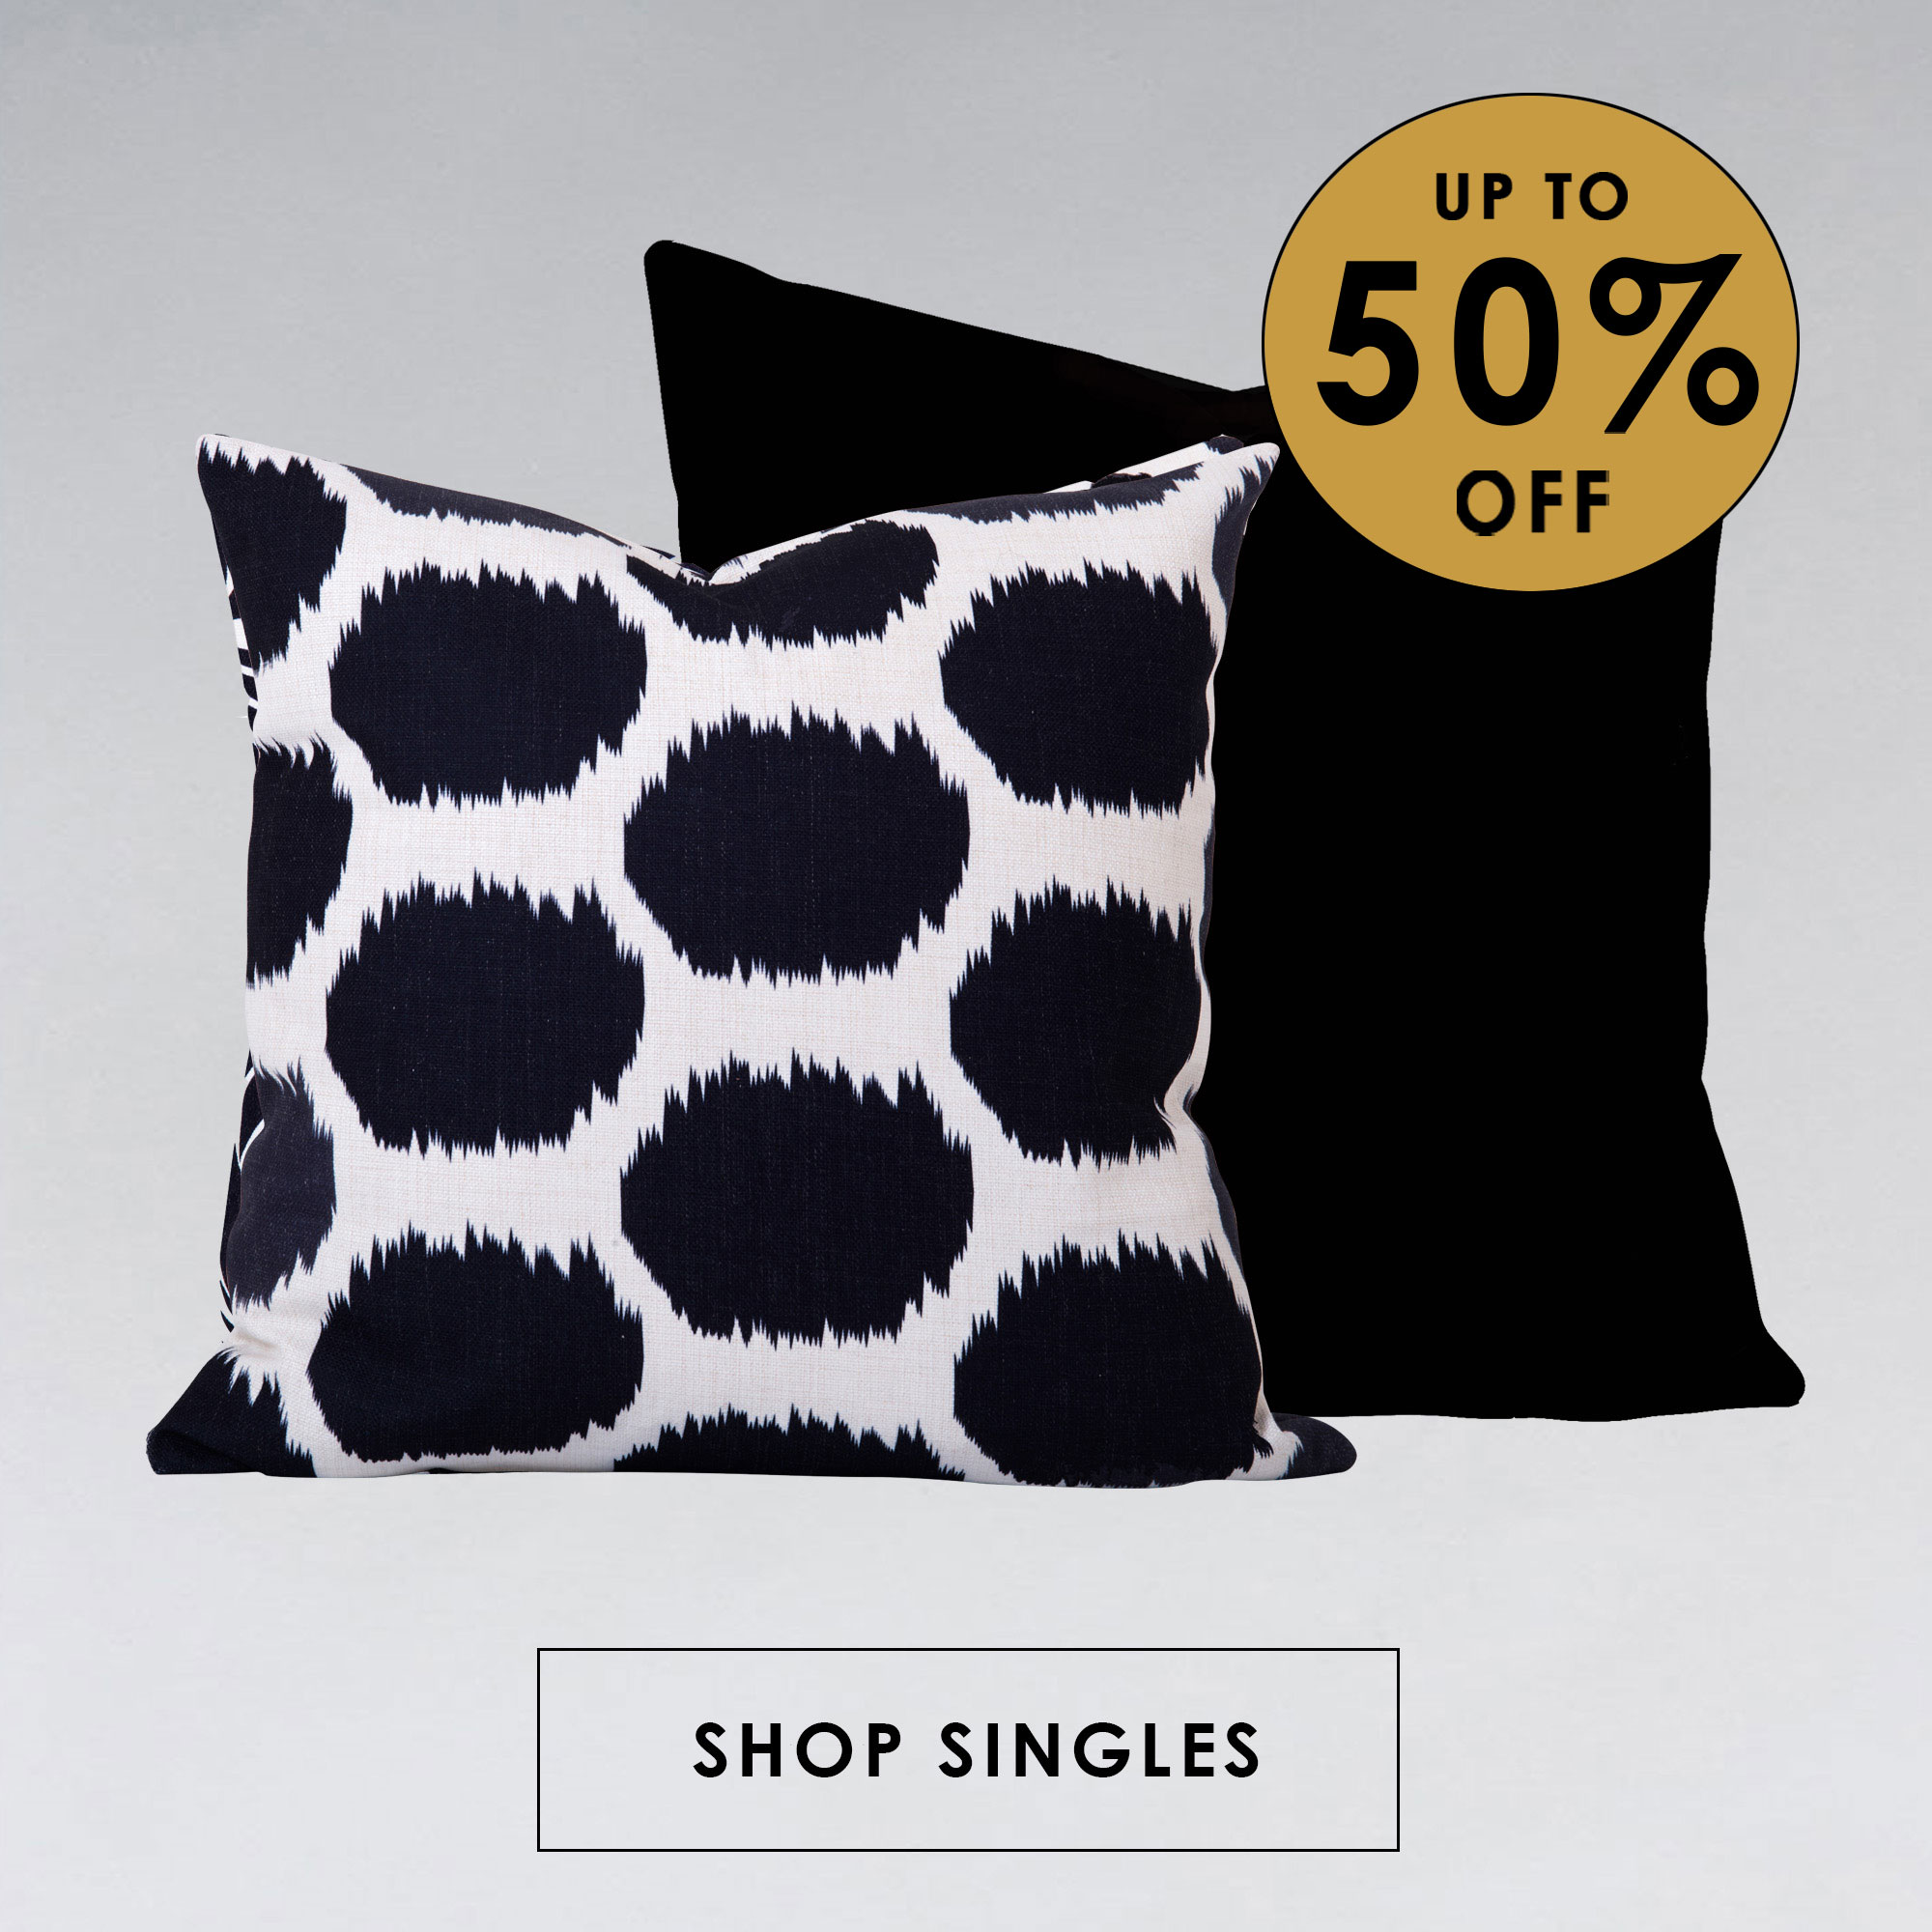 Single Cushions up to 50% off